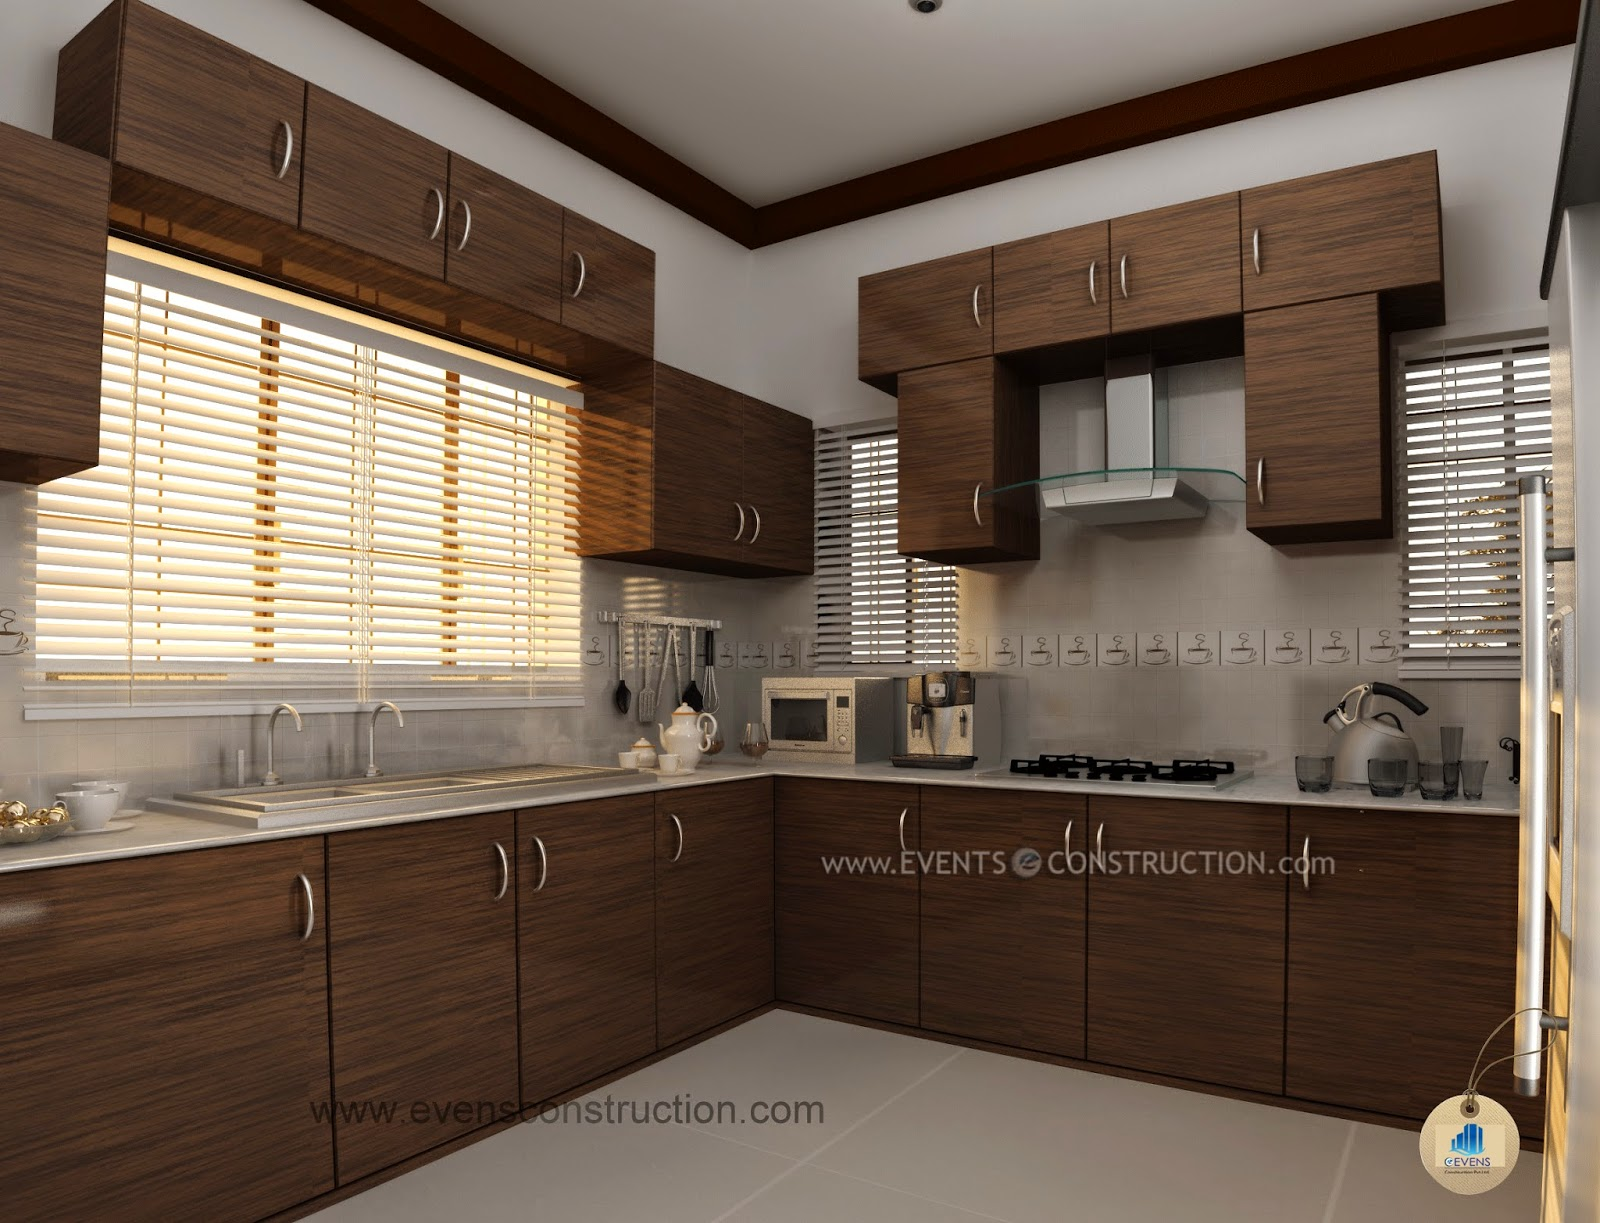 Evens construction pvt ltd modern kerala kitchen for Modern kitchen designs in kerala